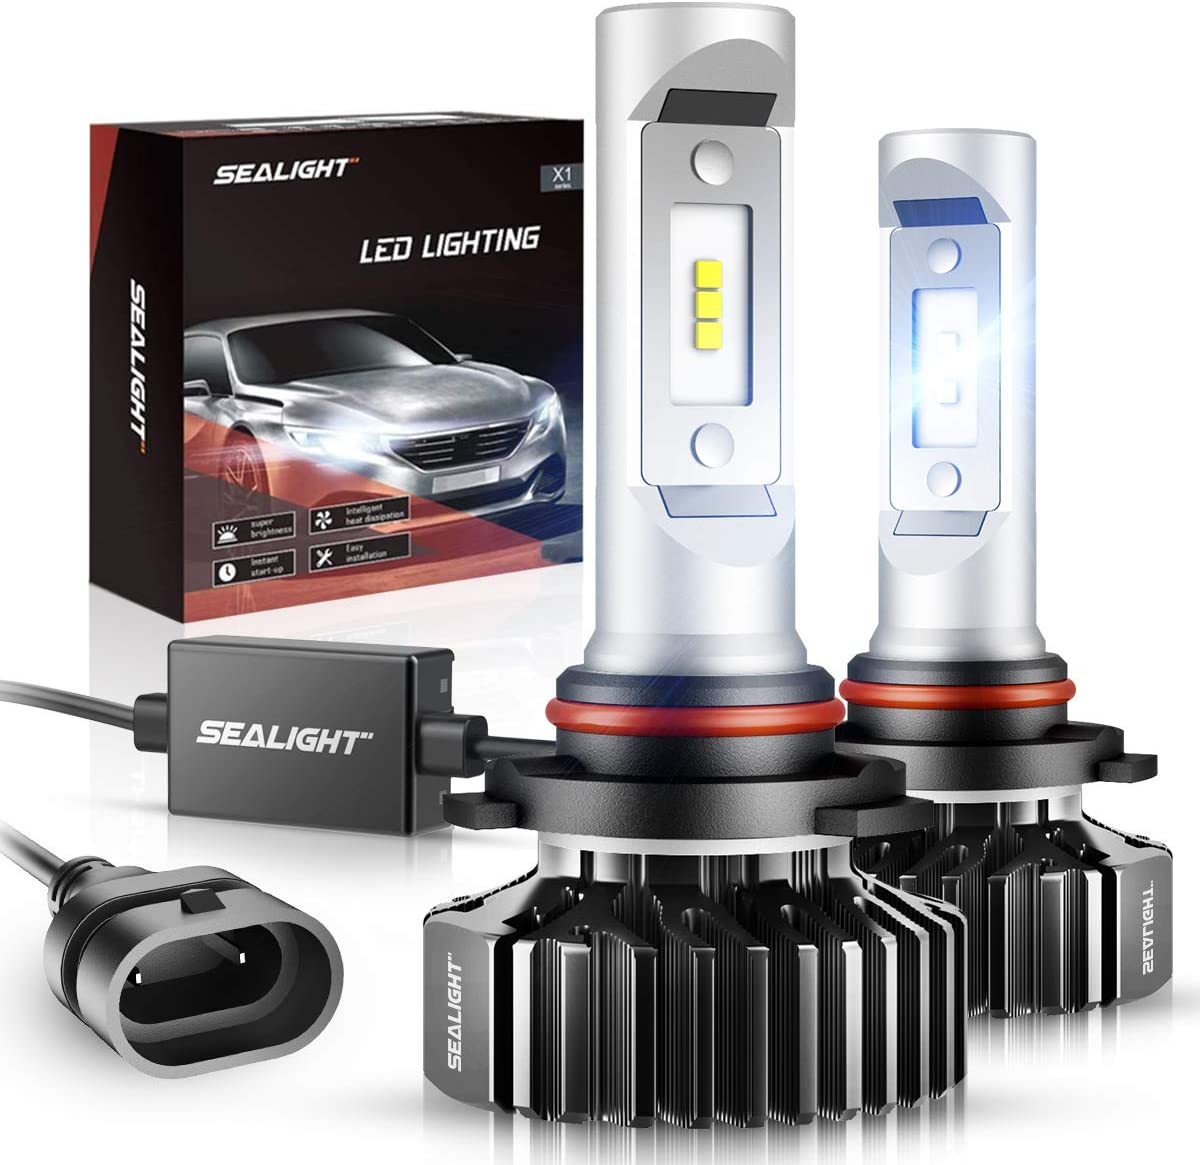 SEALIGHT 9005/HB3 LED High Beam Headlight Bulb X1 Series 9145/9140/H10 Fog Light Bulbs Xenon White 6000K Non-polarity